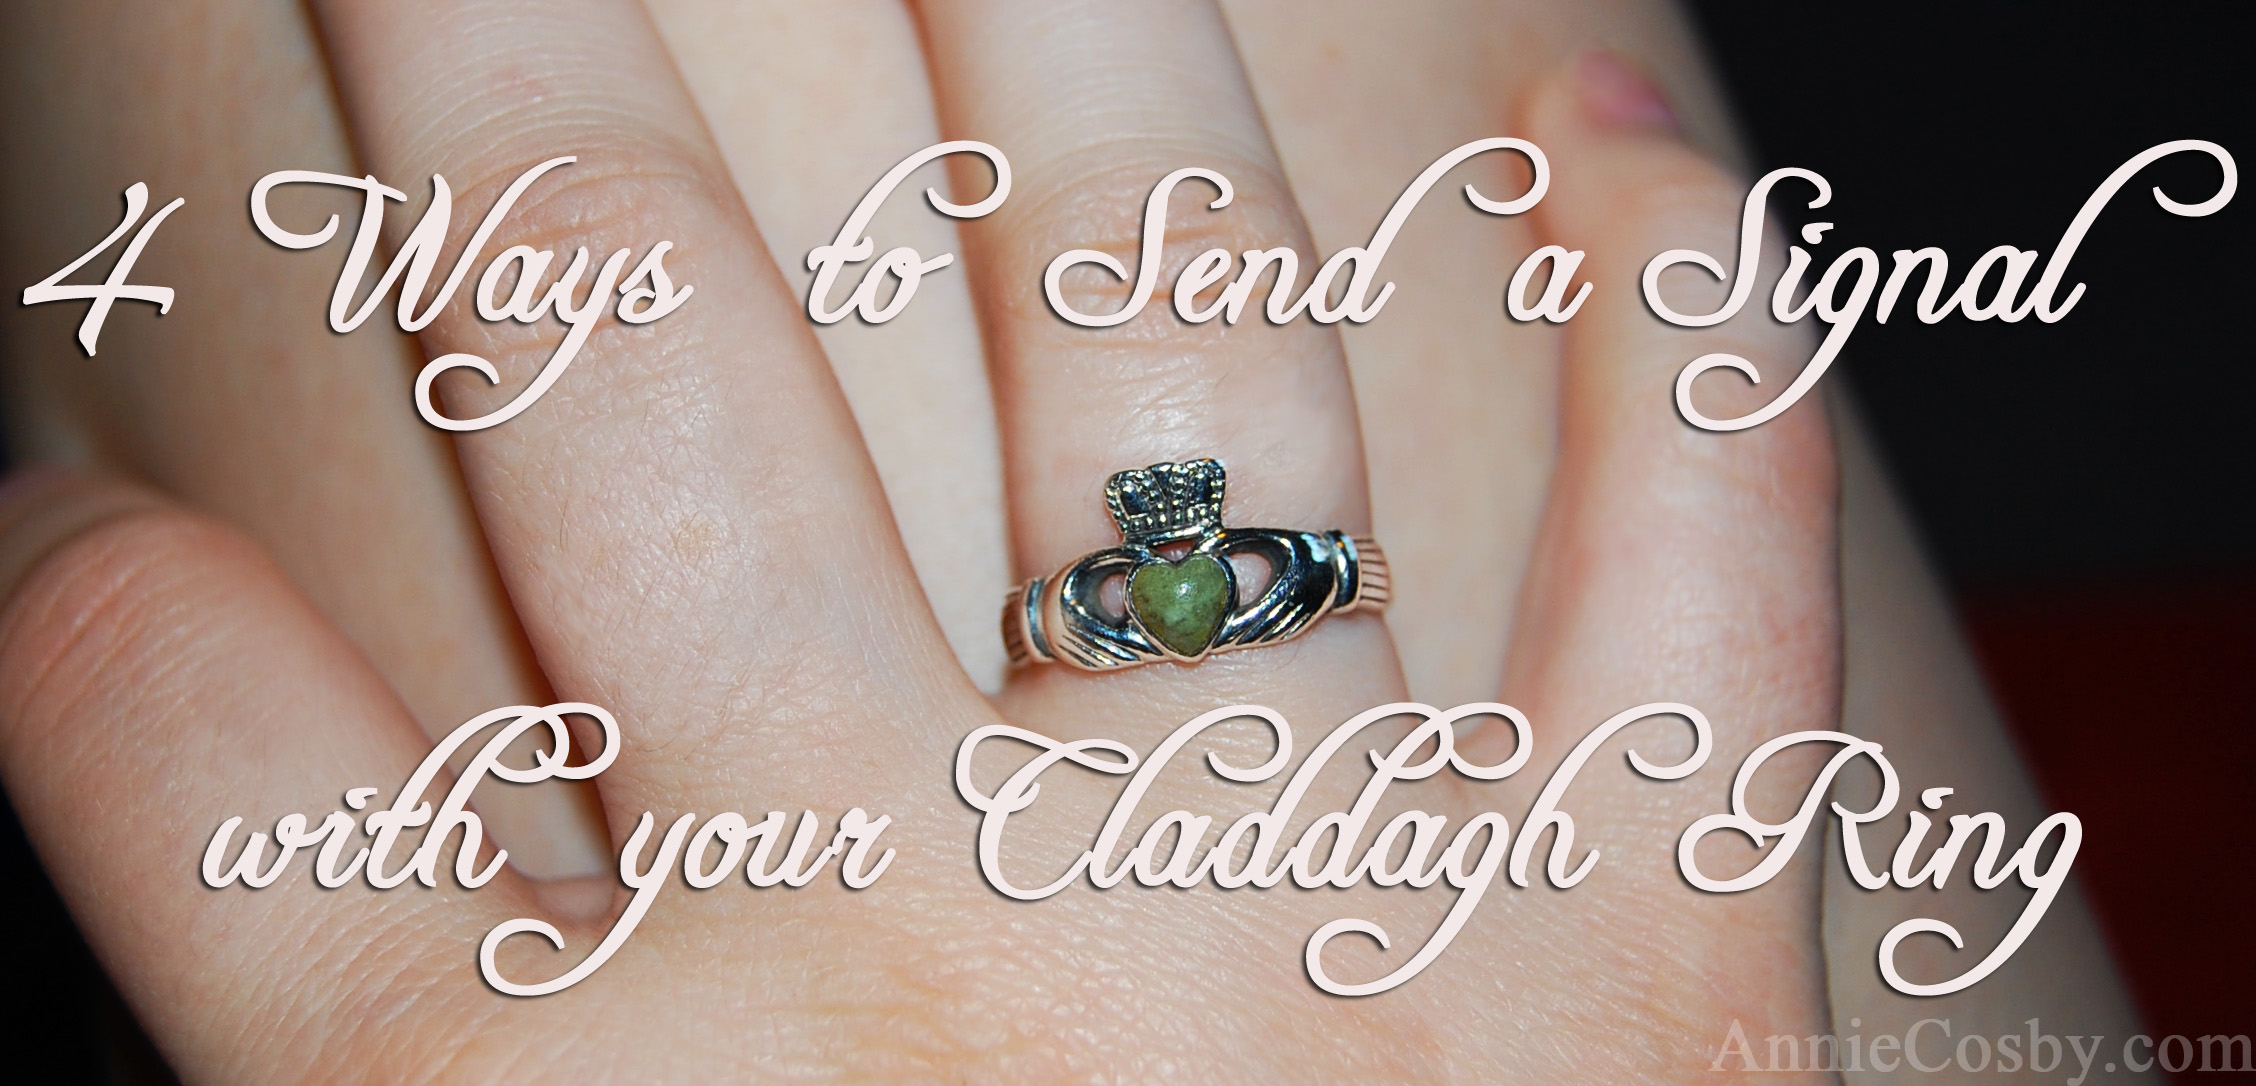 4 ways to send a signal with your claddagh ring Which finger to wear ring for single